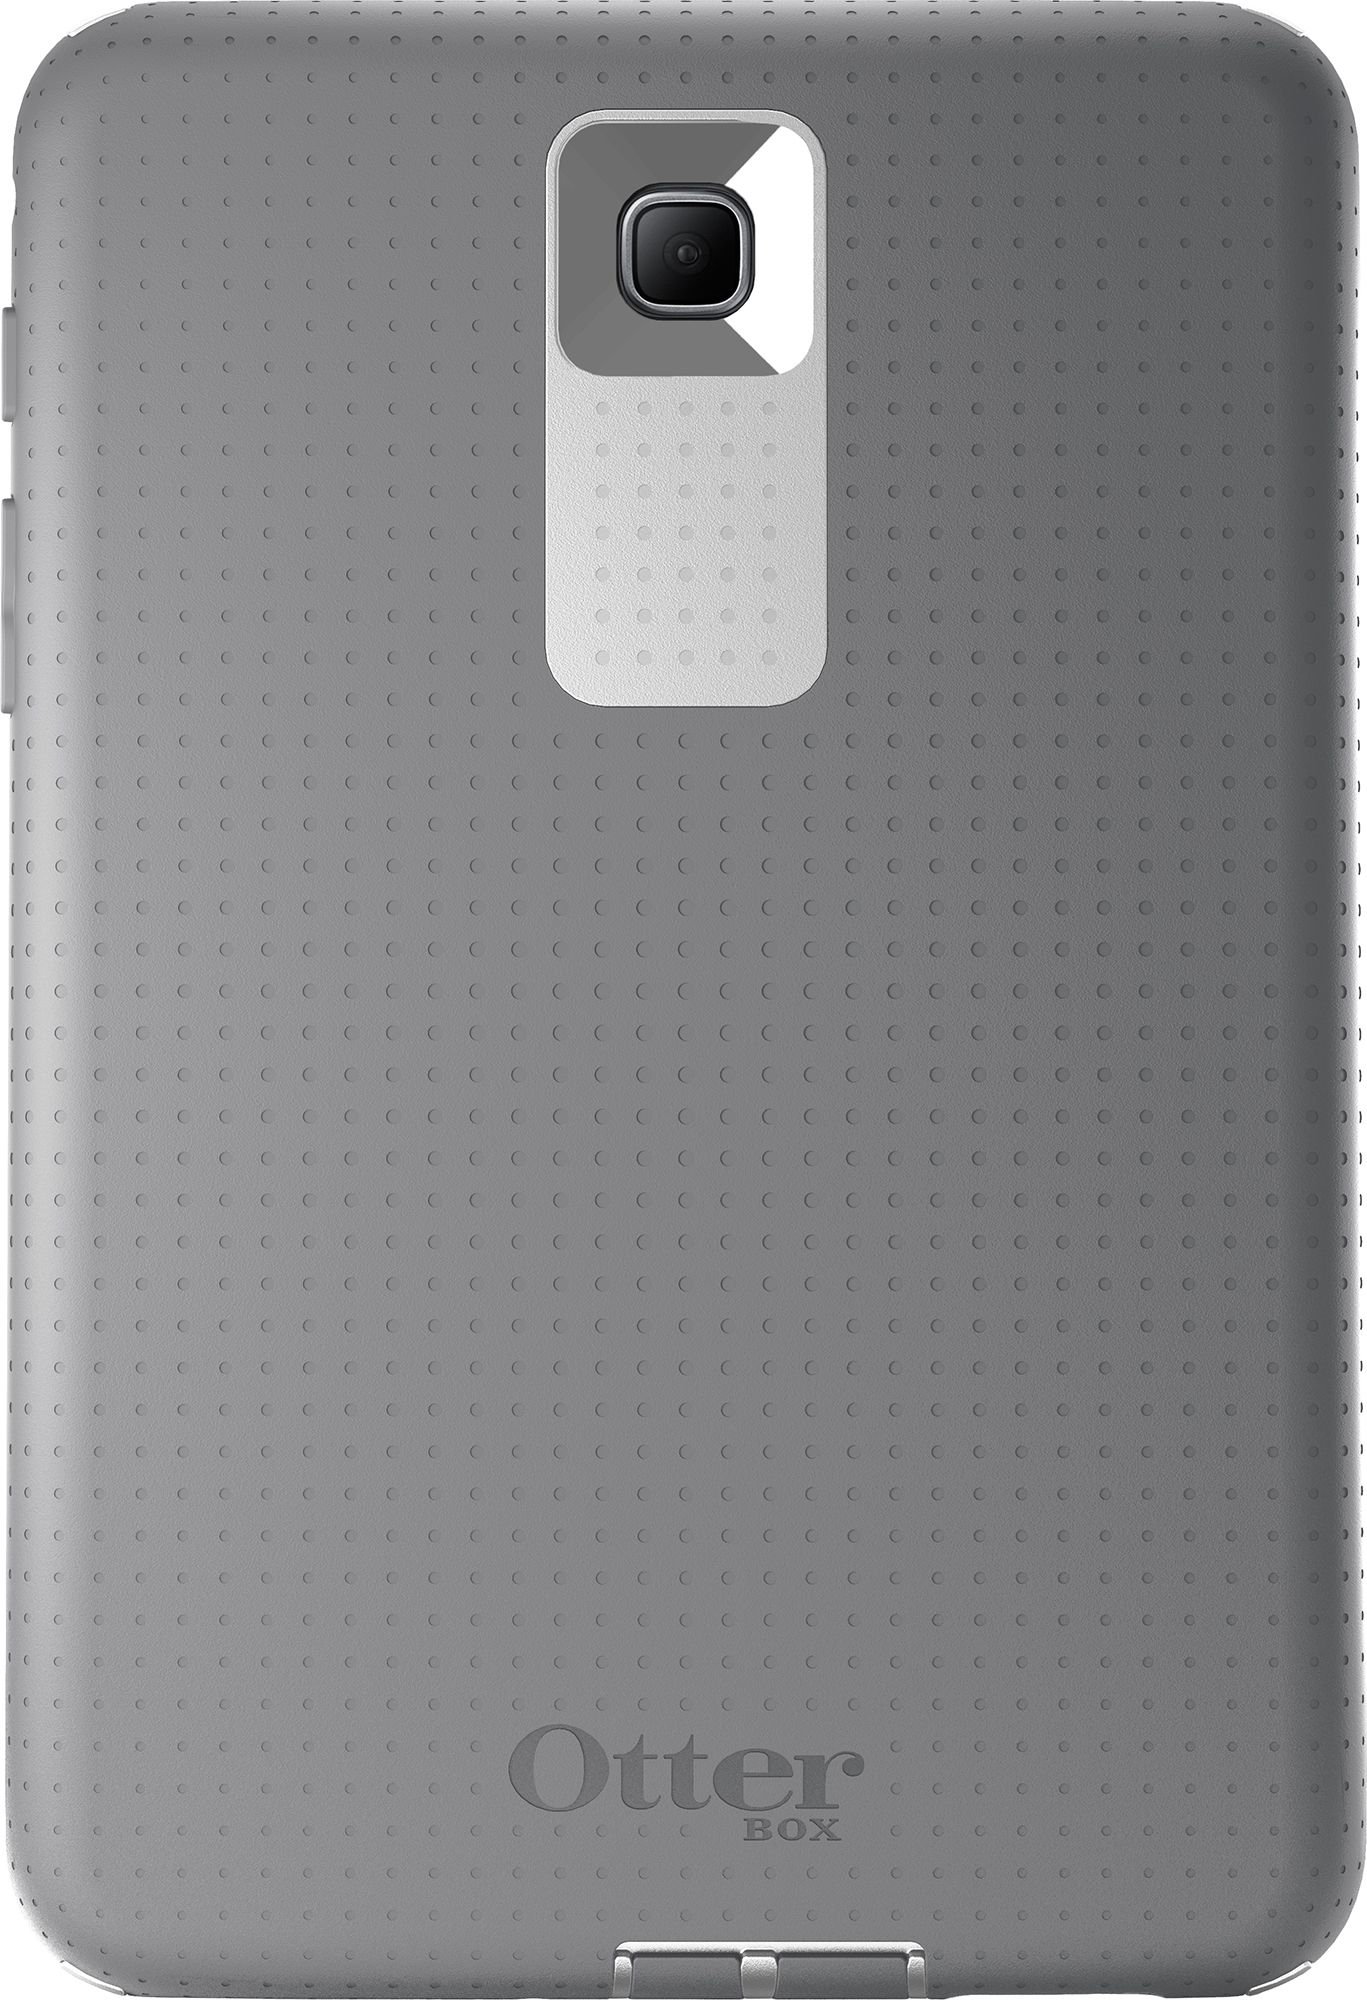 OtterBox Defender Series Case for Galaxy Tab A 8.0